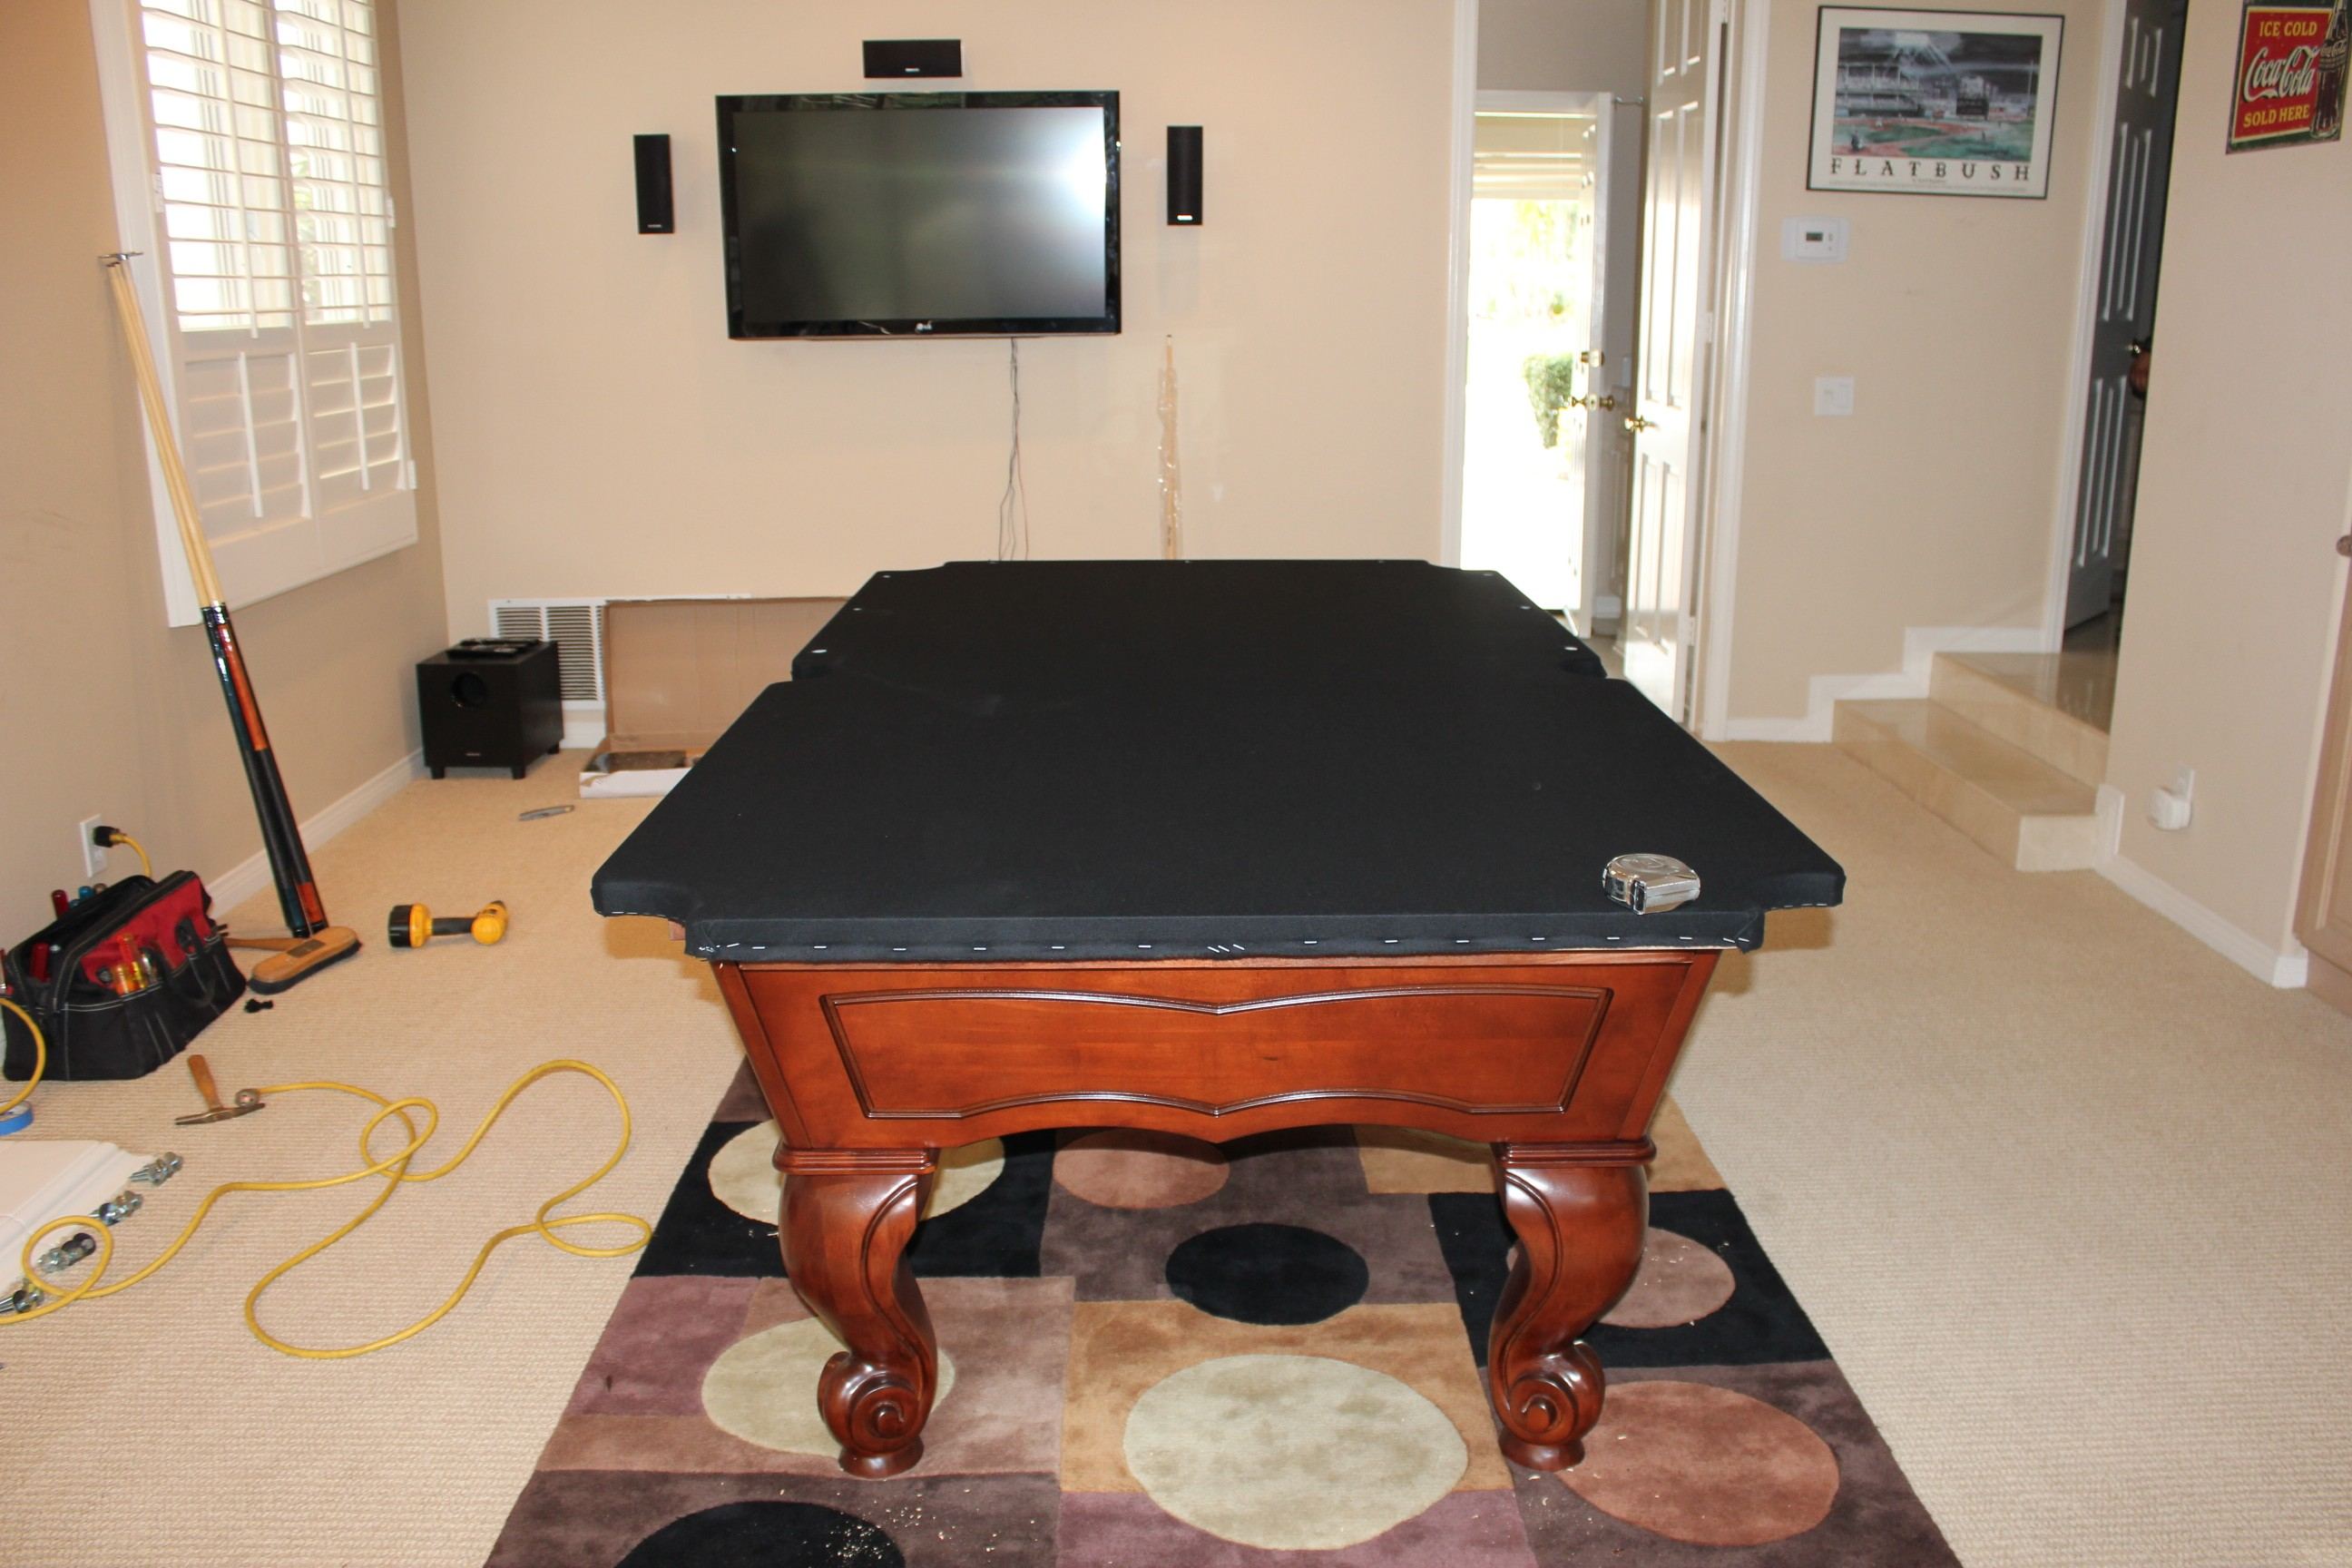 Important Facts About Import Pool Tables - DK Billiard ...